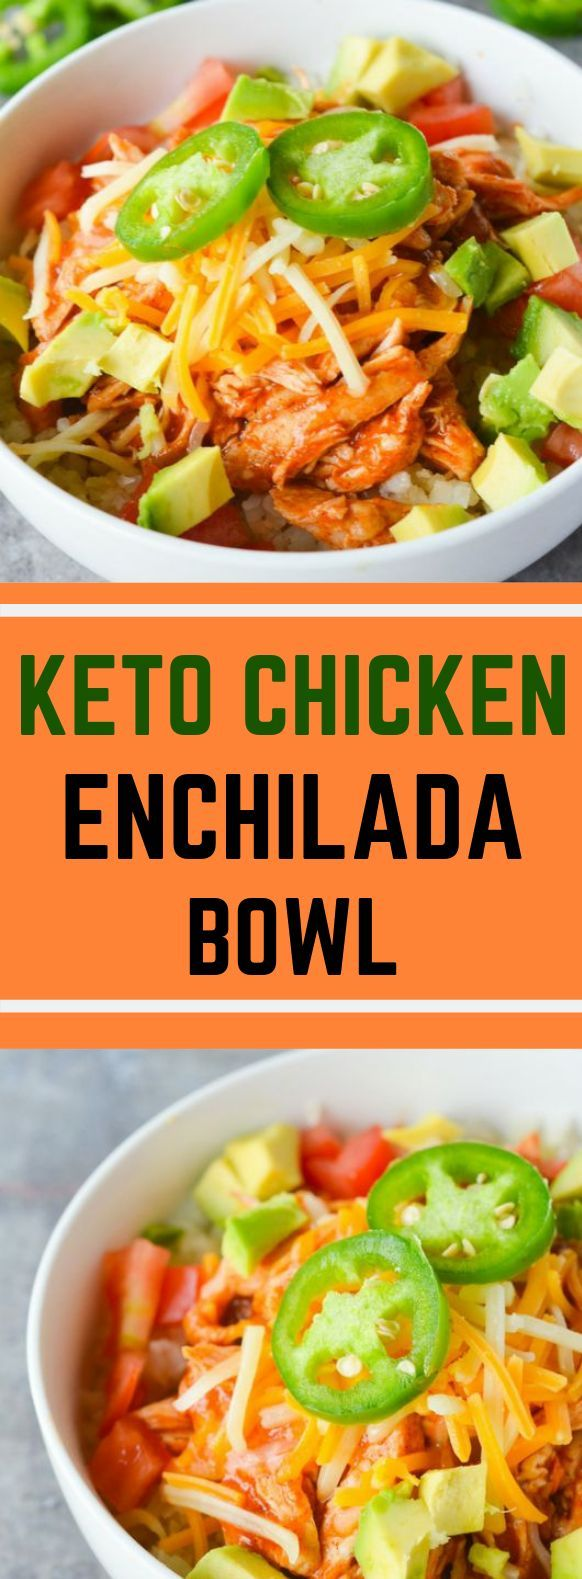 KETO CHICKEN ENCHILADA BOWL #Keto #Diet  KETO CHICKEN ENCHILADA BOWL #Keto #Diet  The post KETO CHICKEN ENCHILADA BOWL #Keto #Diet appeared first on Gesundheit. #ketodietforbeginners